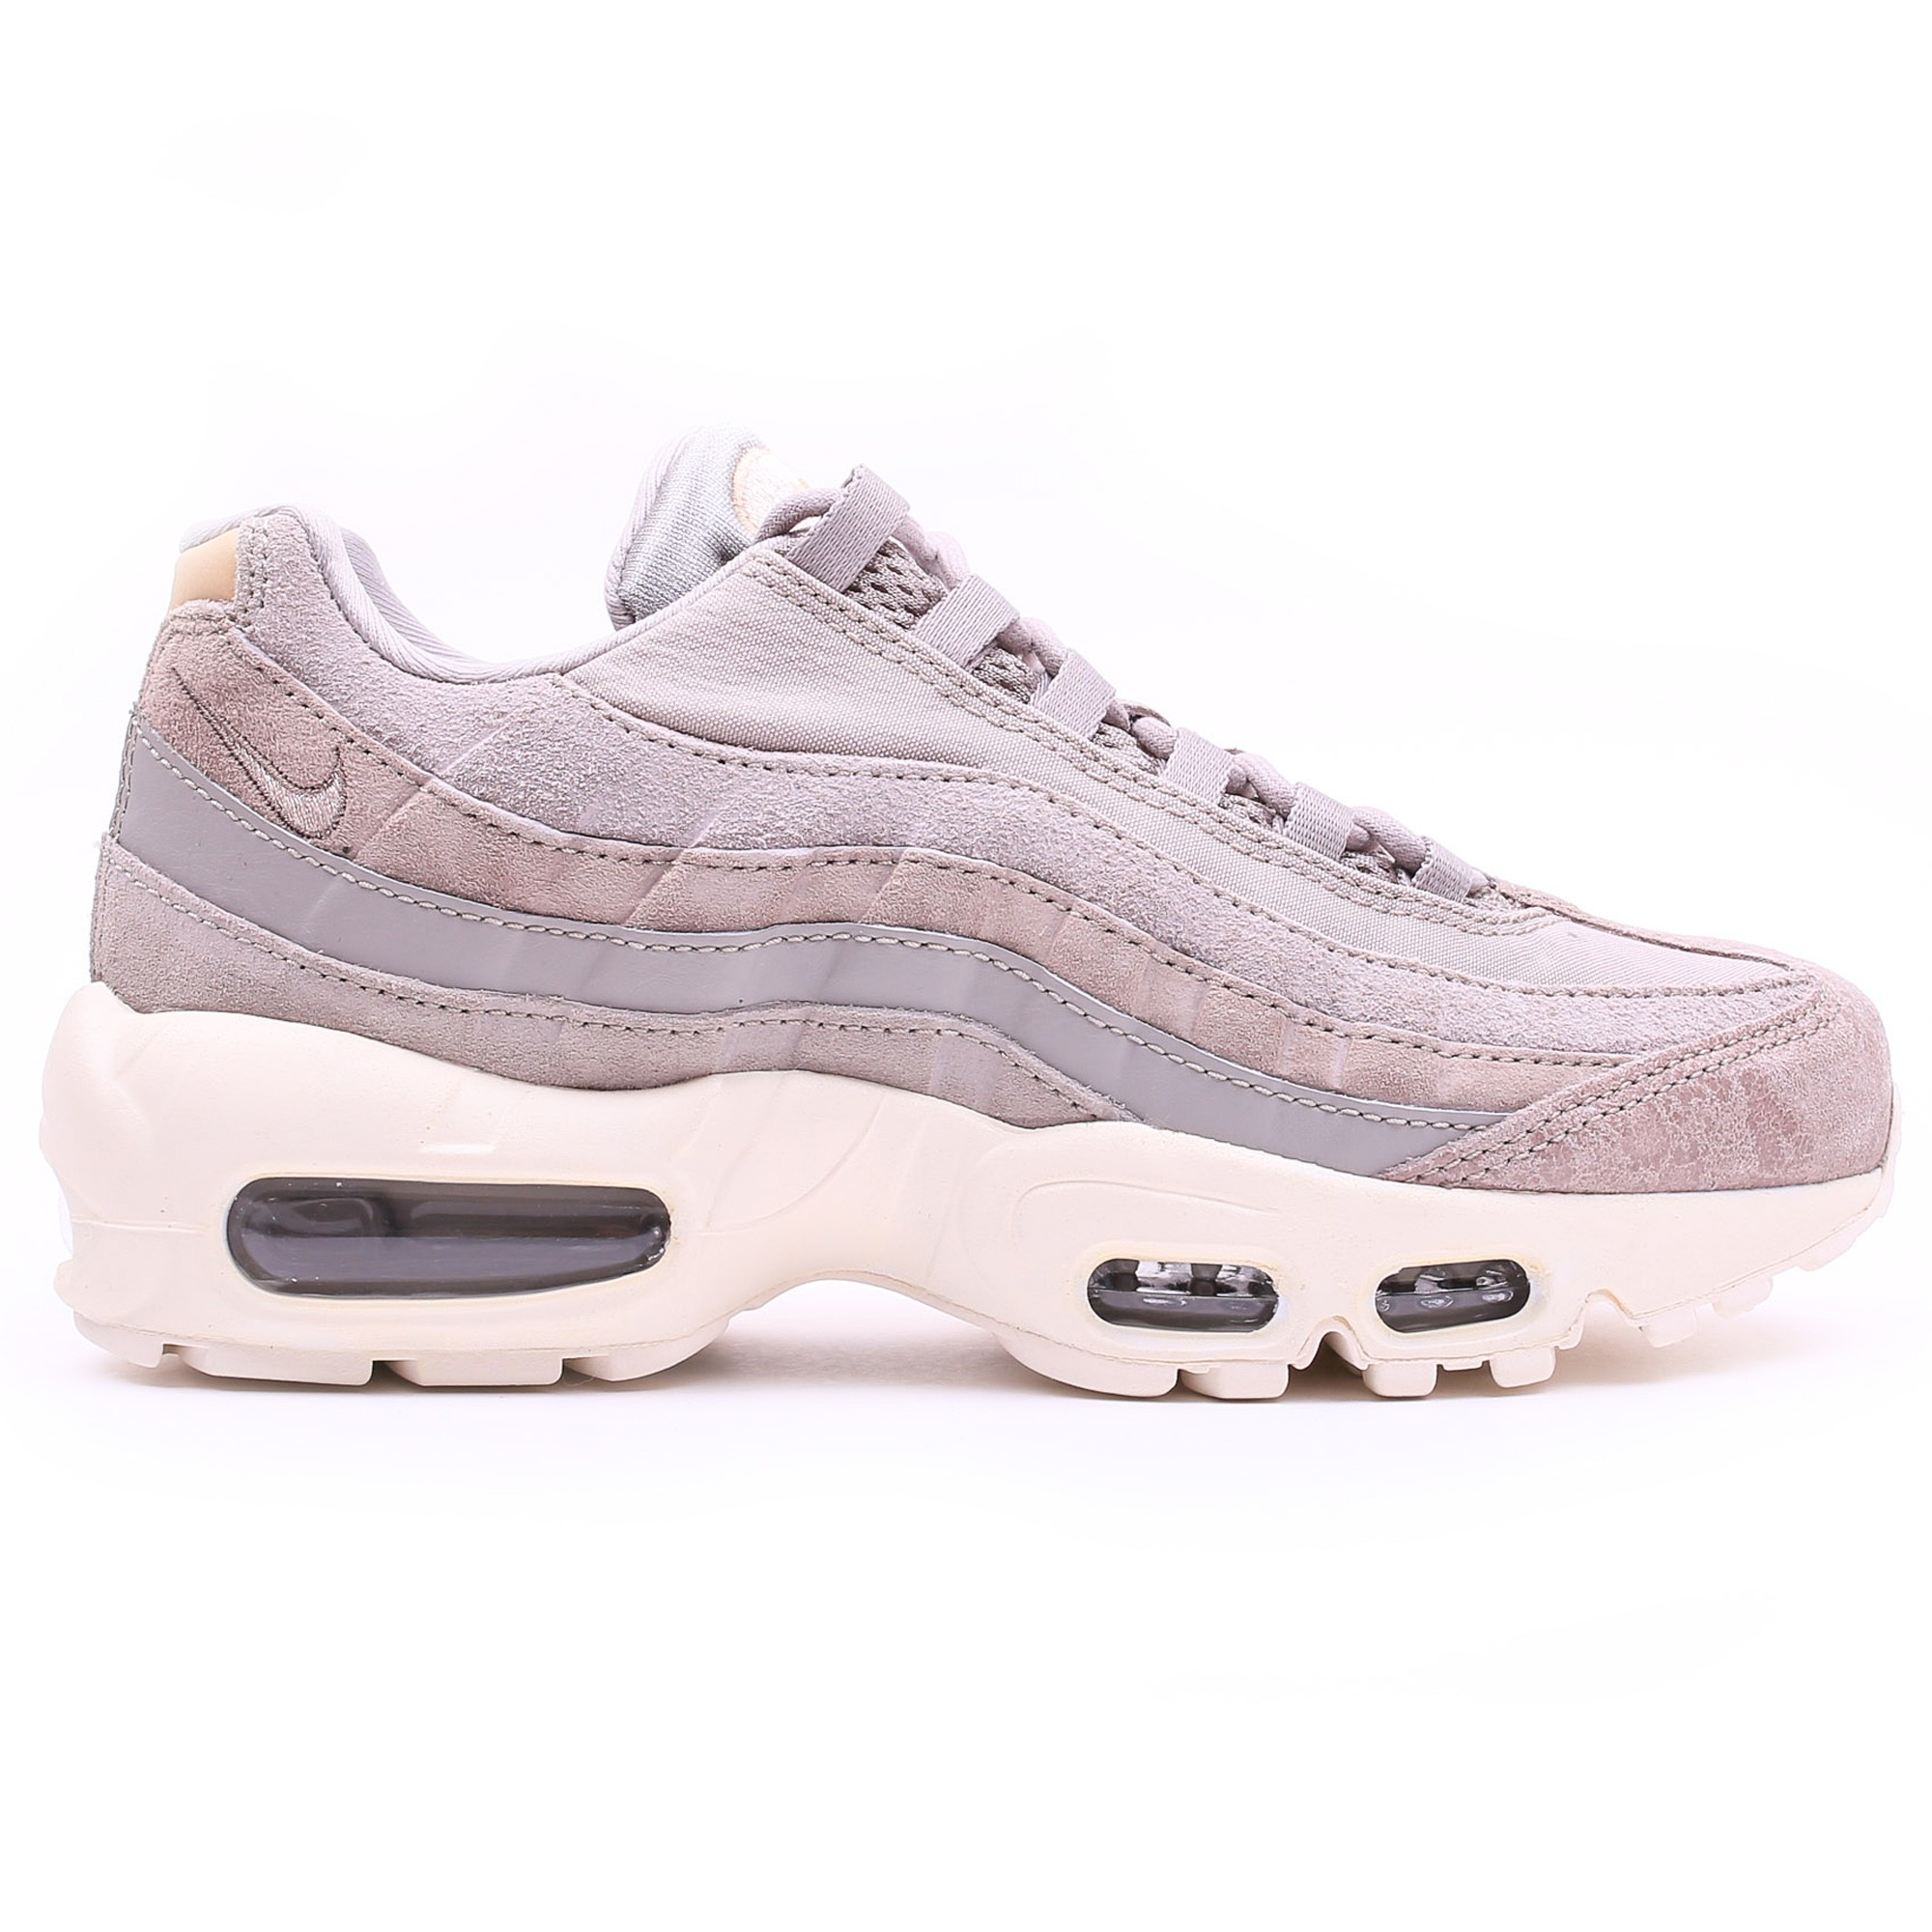 Custom Air Max 95 Shoes. Cheap Nike MY. Narkoskliniken